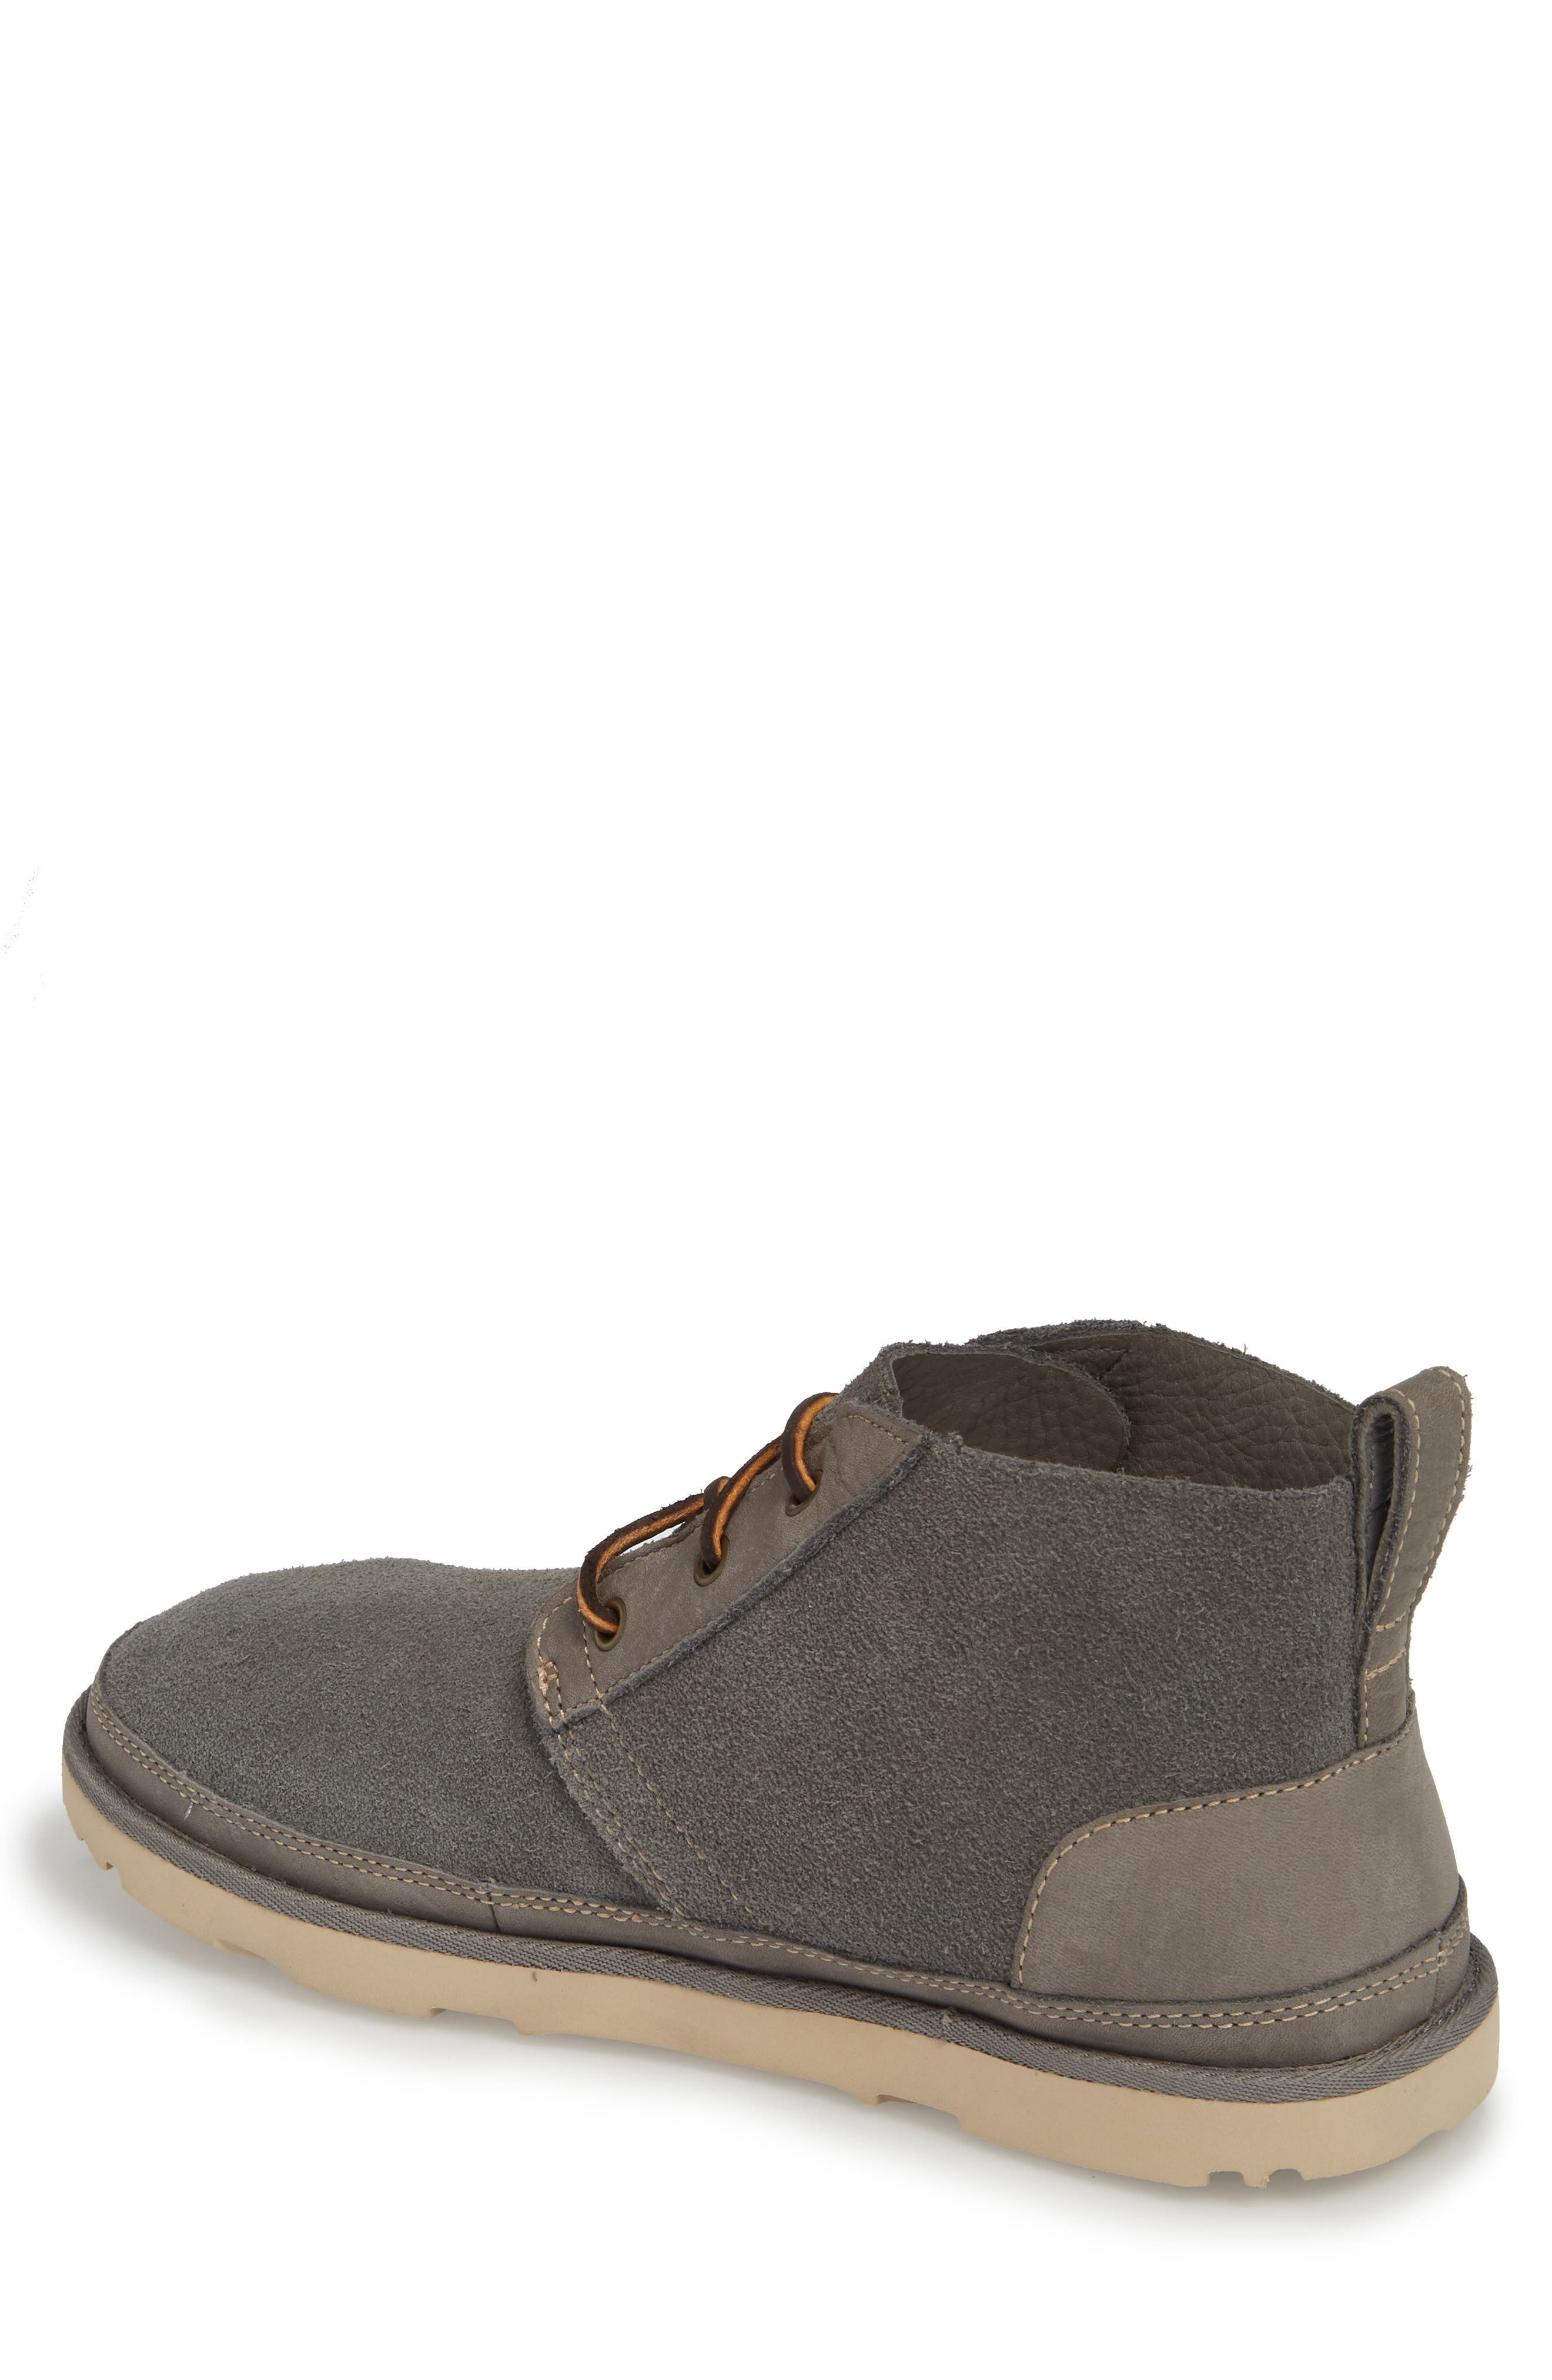 Neumel Unlined Chukka Boot,                             Alternate thumbnail 2, color,                             CHARCOAL LEATHER